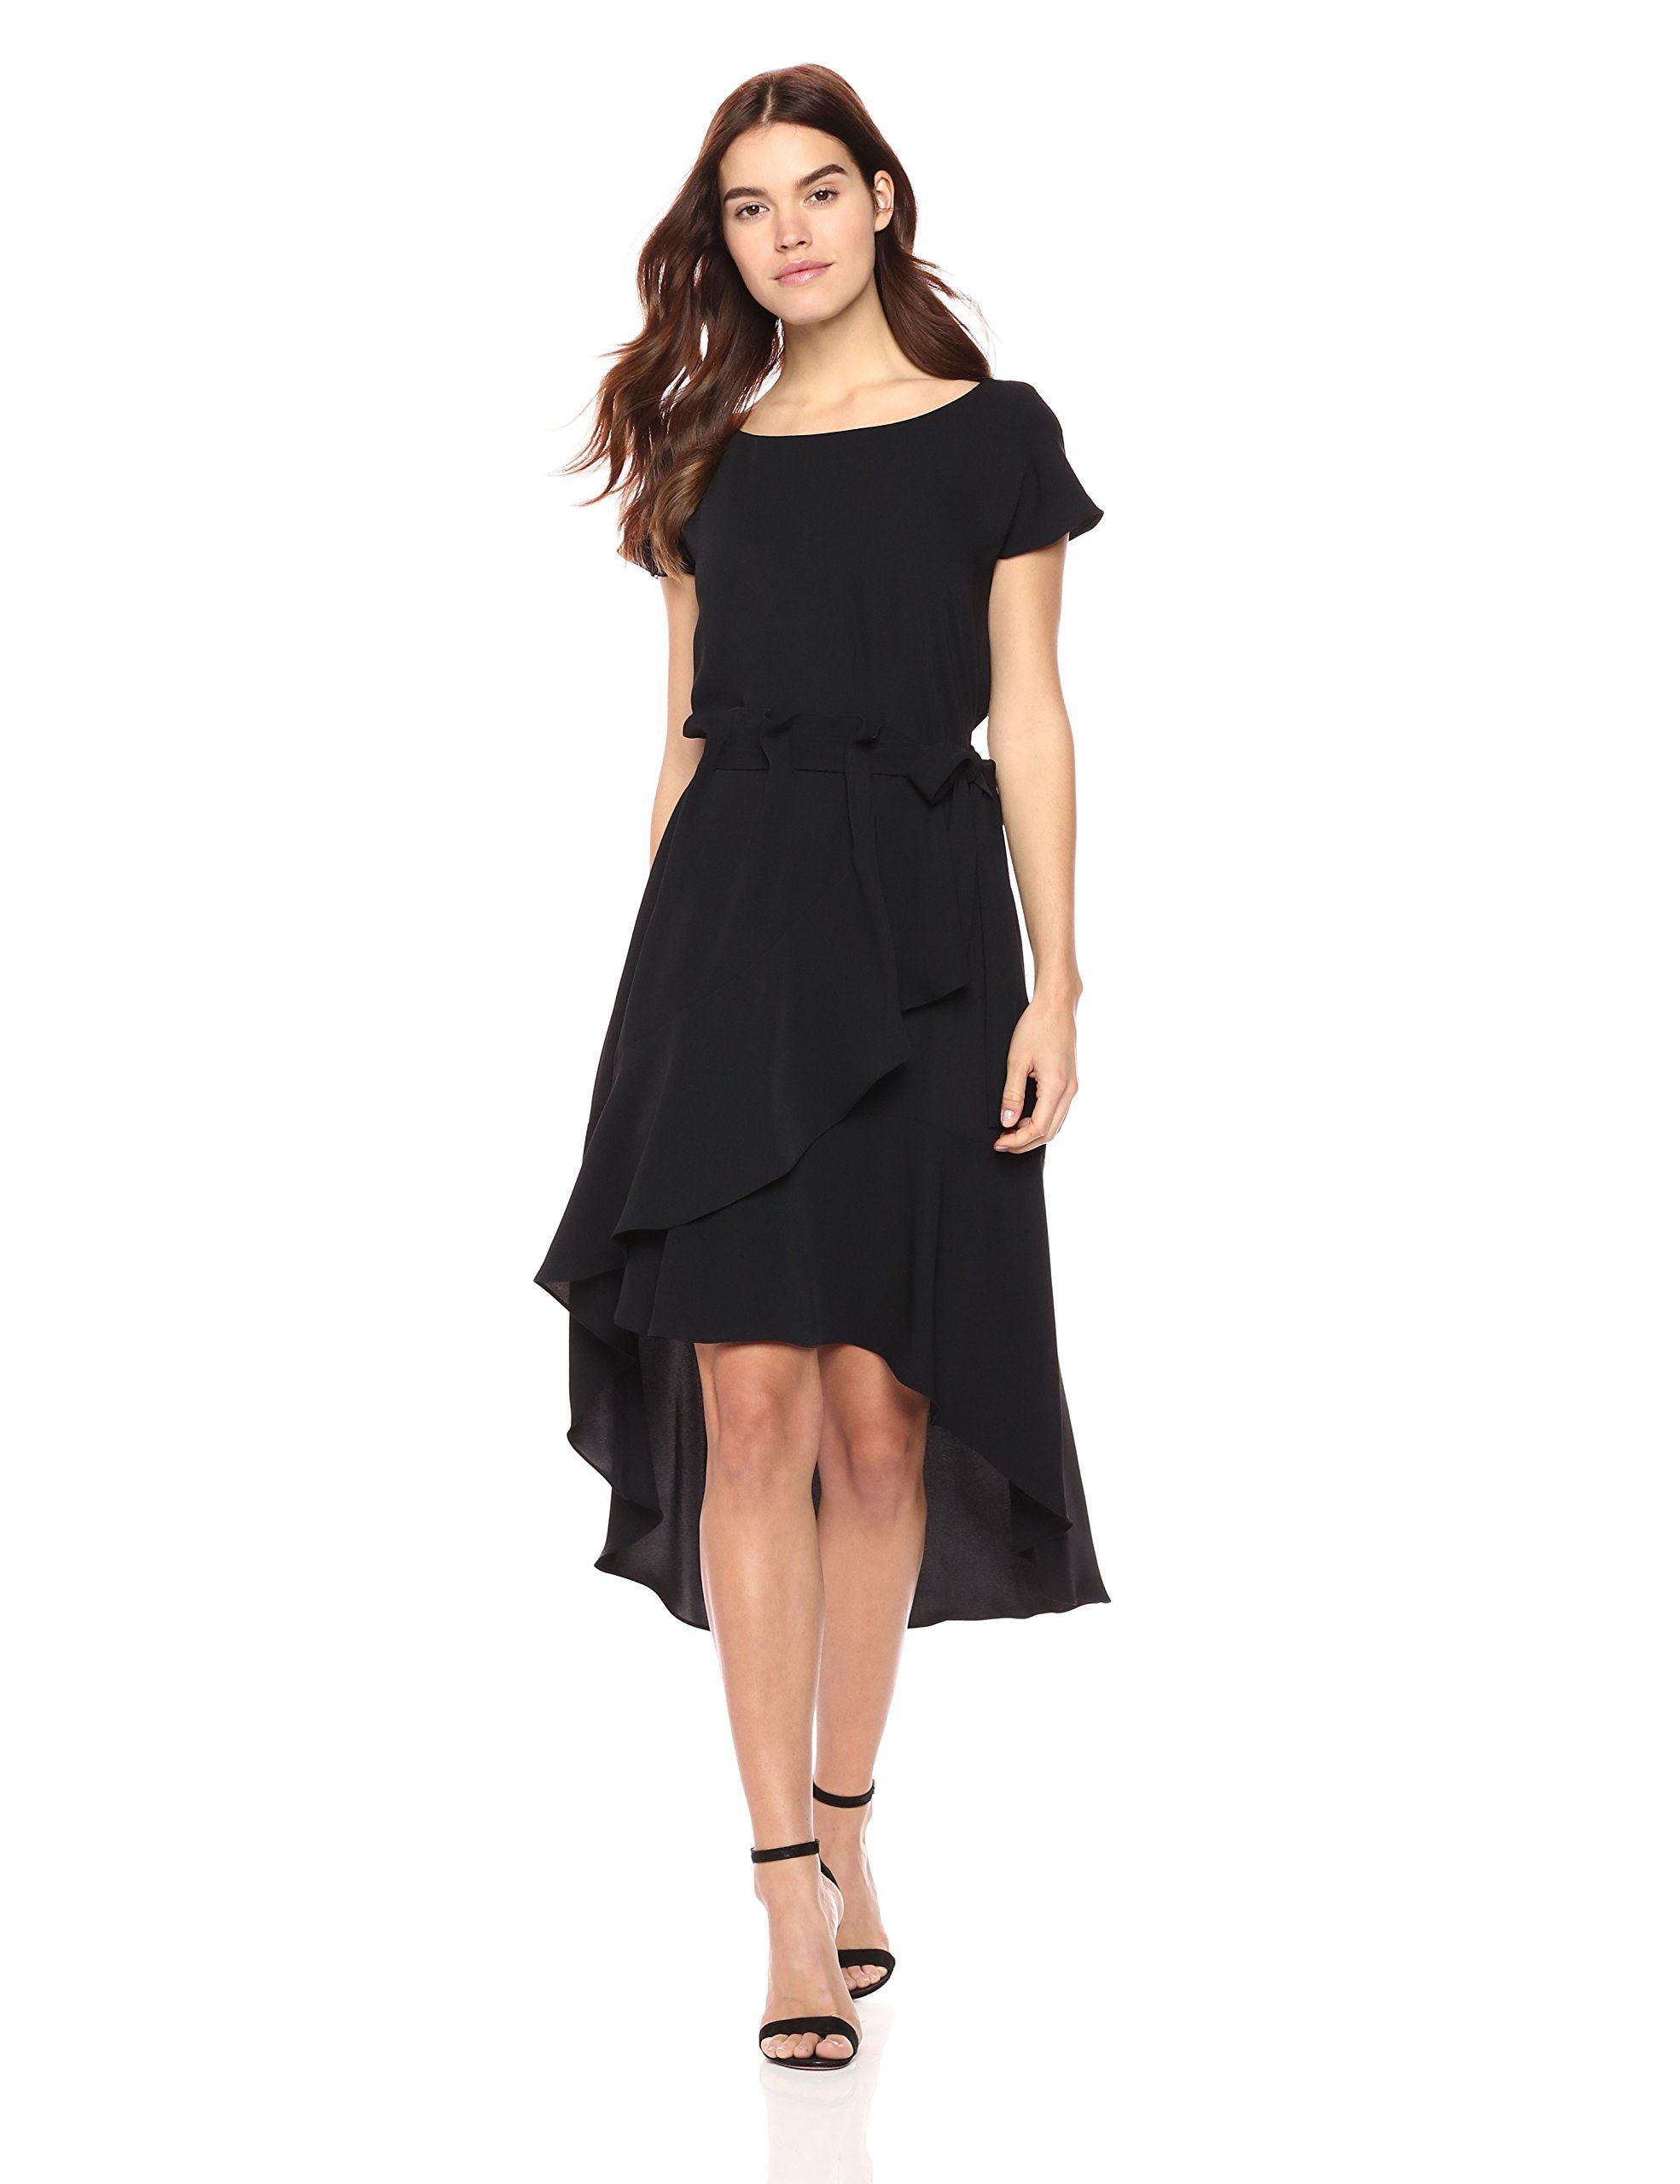 Laundry By Shelli Segal Womens Crepe Dress With Asymmetrical Hilow